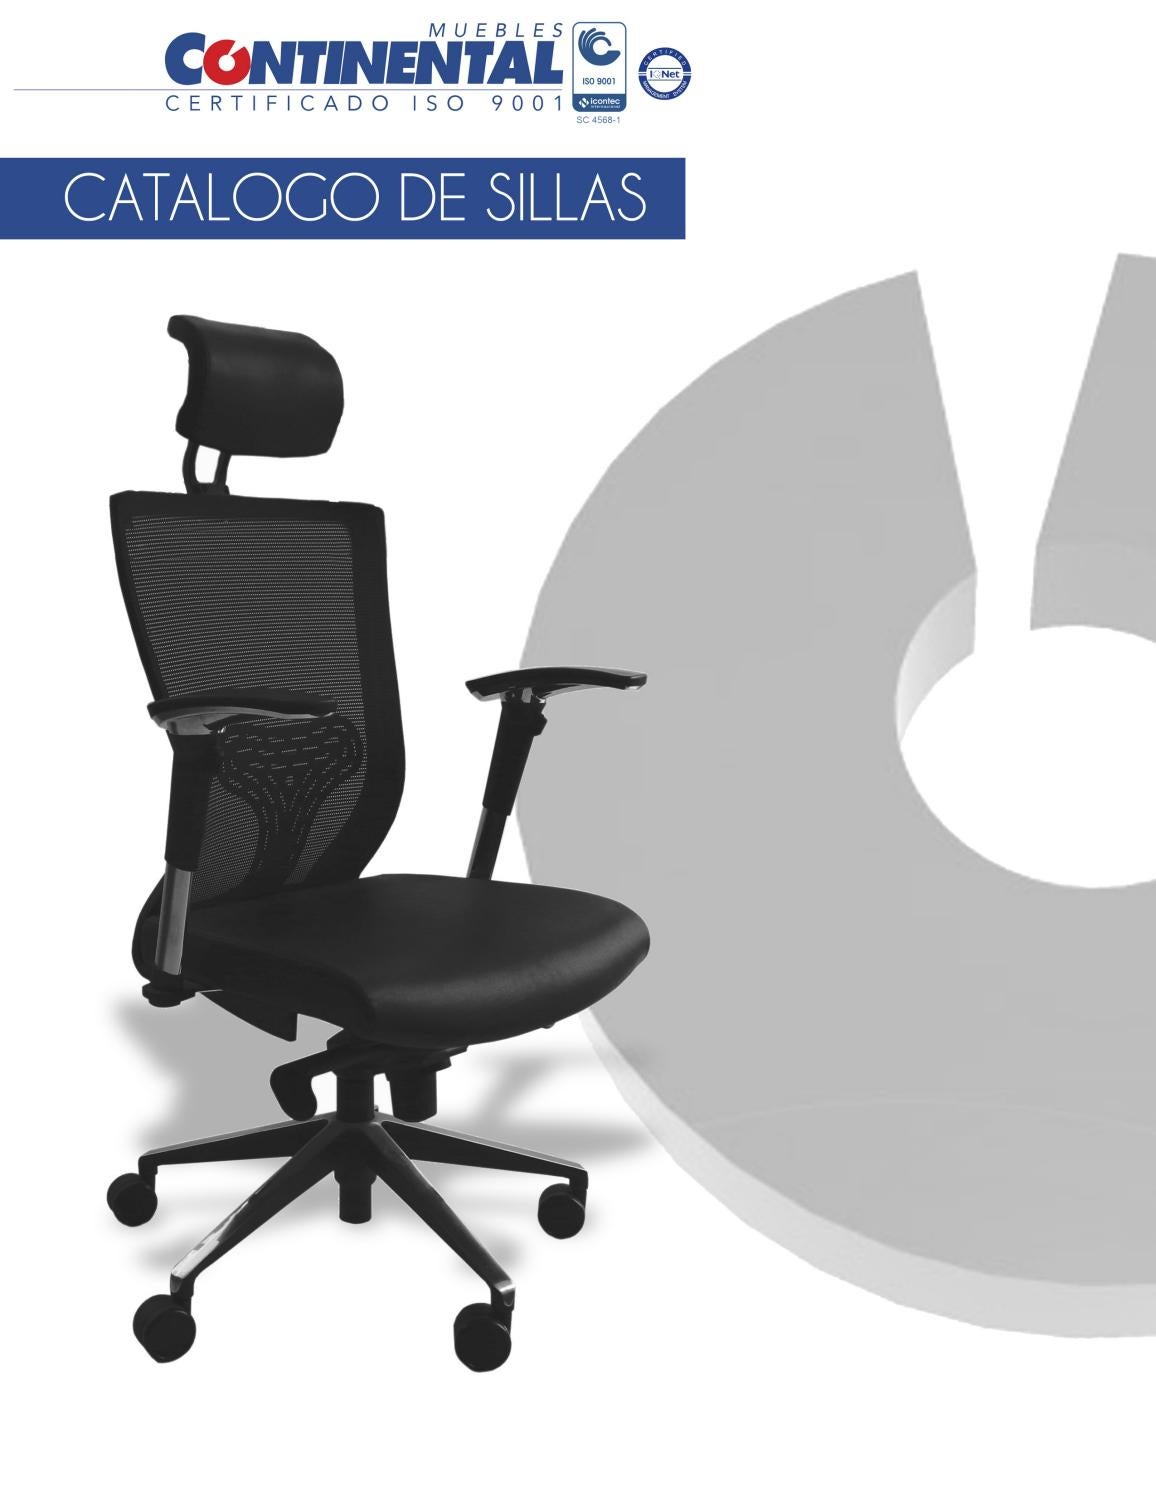 Catalogo De Sillas Catálogo De Sillas Importadas By Muebles Continental Issuu